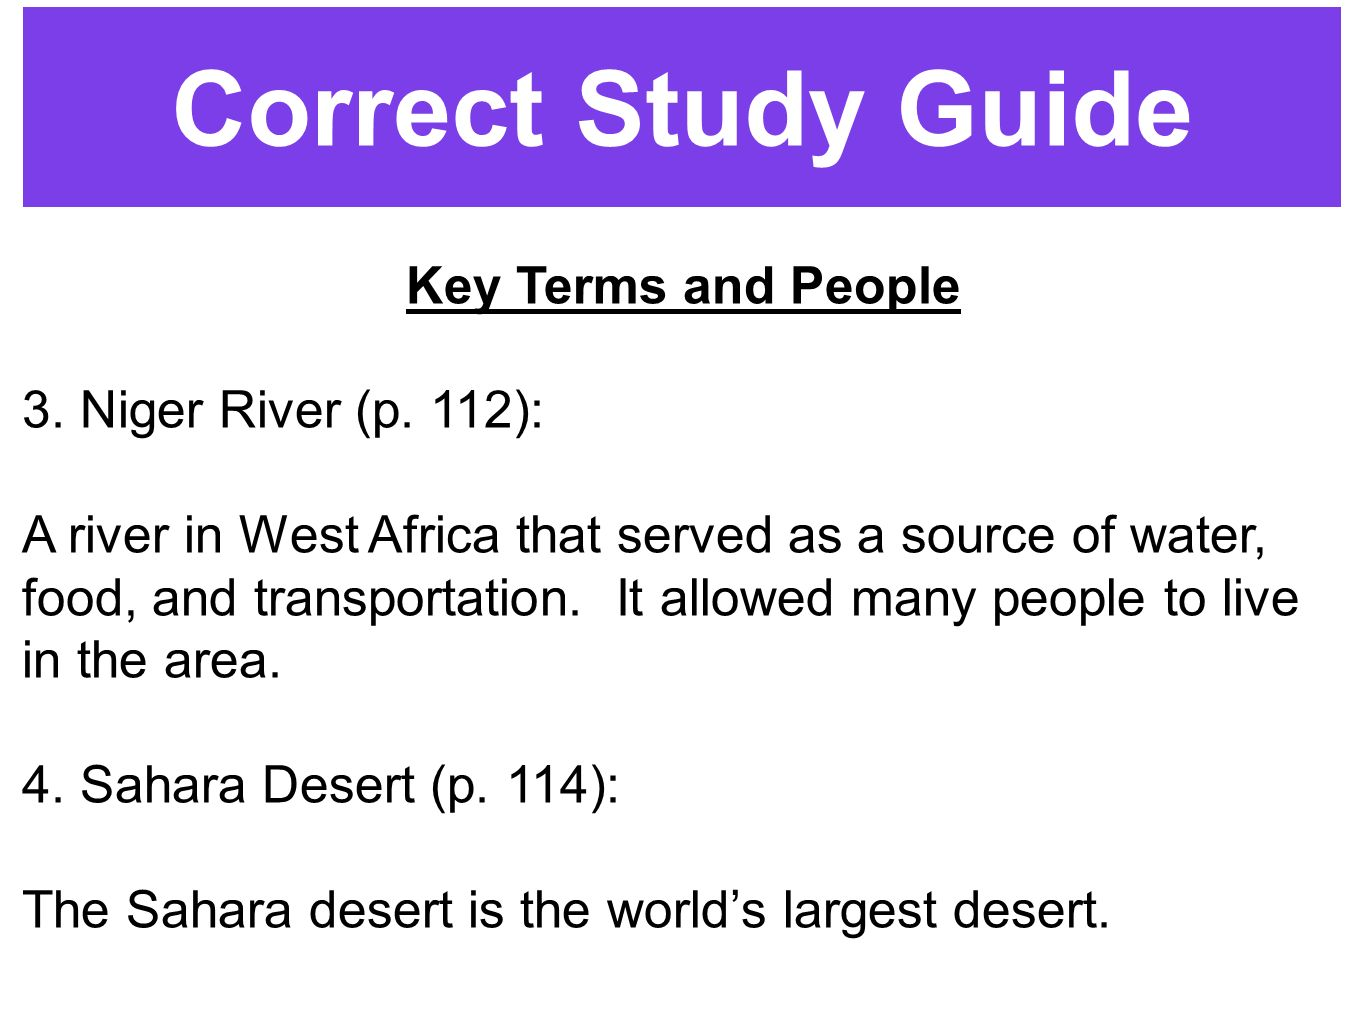 an analysis of the largest desert area sahara desert in africa In summary the geographical pattern of expansion varied from season to season, with the most notable differences occurring along the sahara's northern and southern boundaries the sahara is the world's largest warm-weather desert like all deserts, the boundaries of the sahara fluctuate with the.